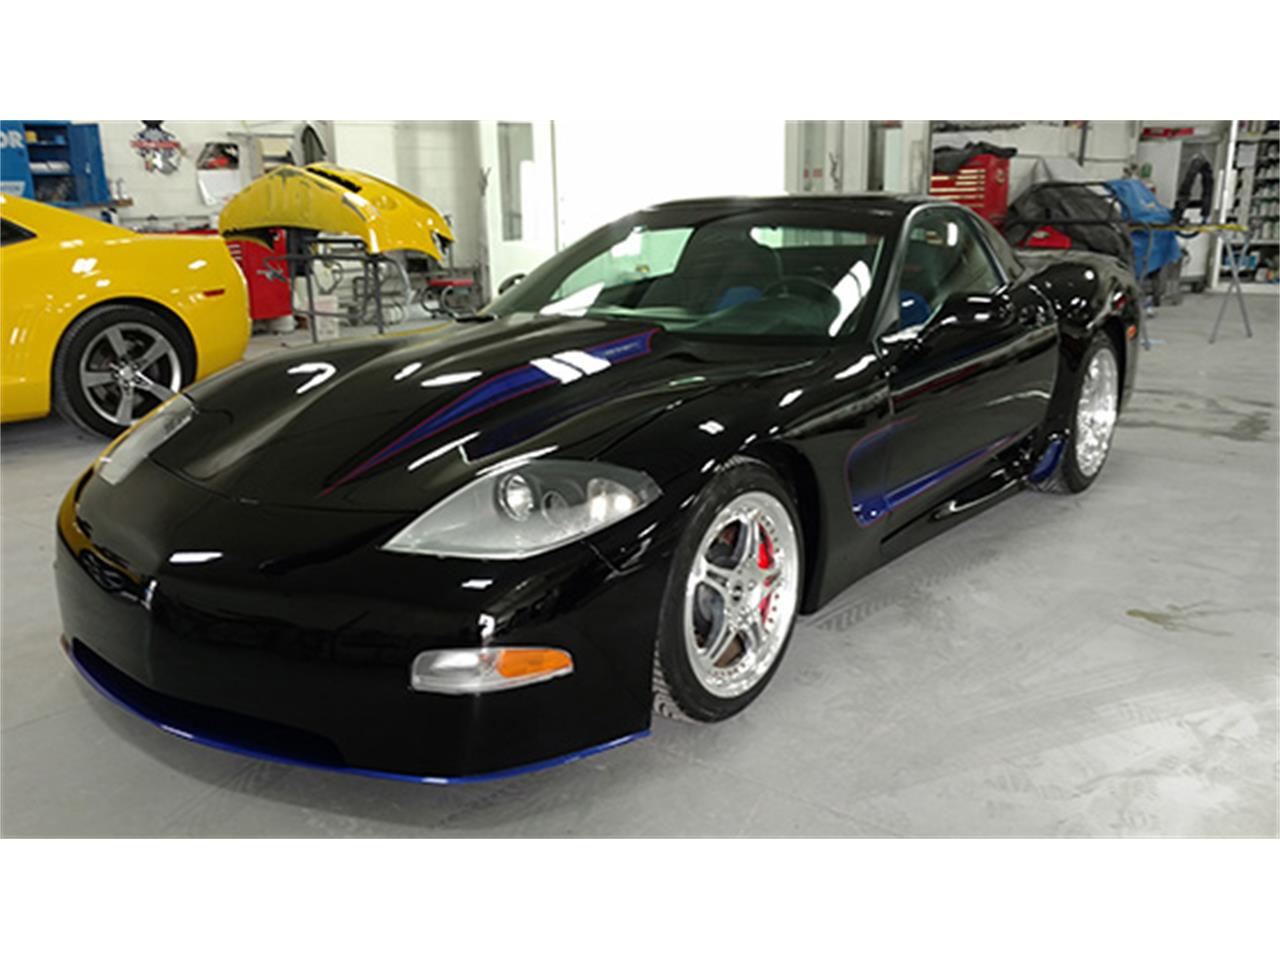 2002 Chevrolet Corvette Z06 Lingenfelter Widebody For Sale